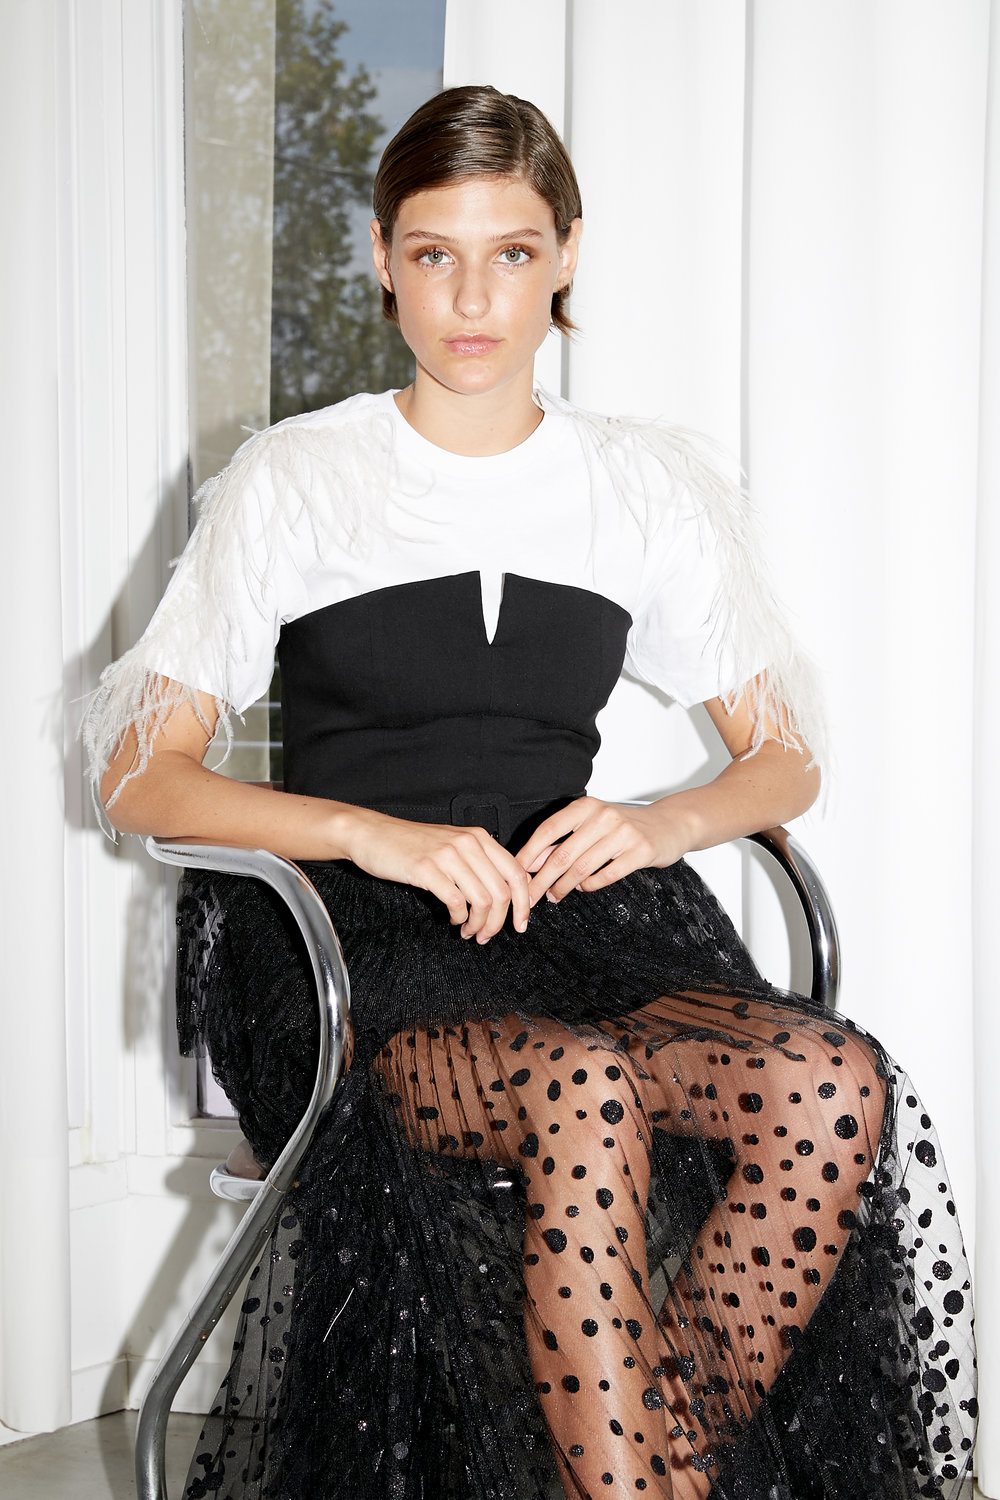 Model is seated in white t-shirt with feather trim and black bustier top and pleated sparkling chiffon skirt